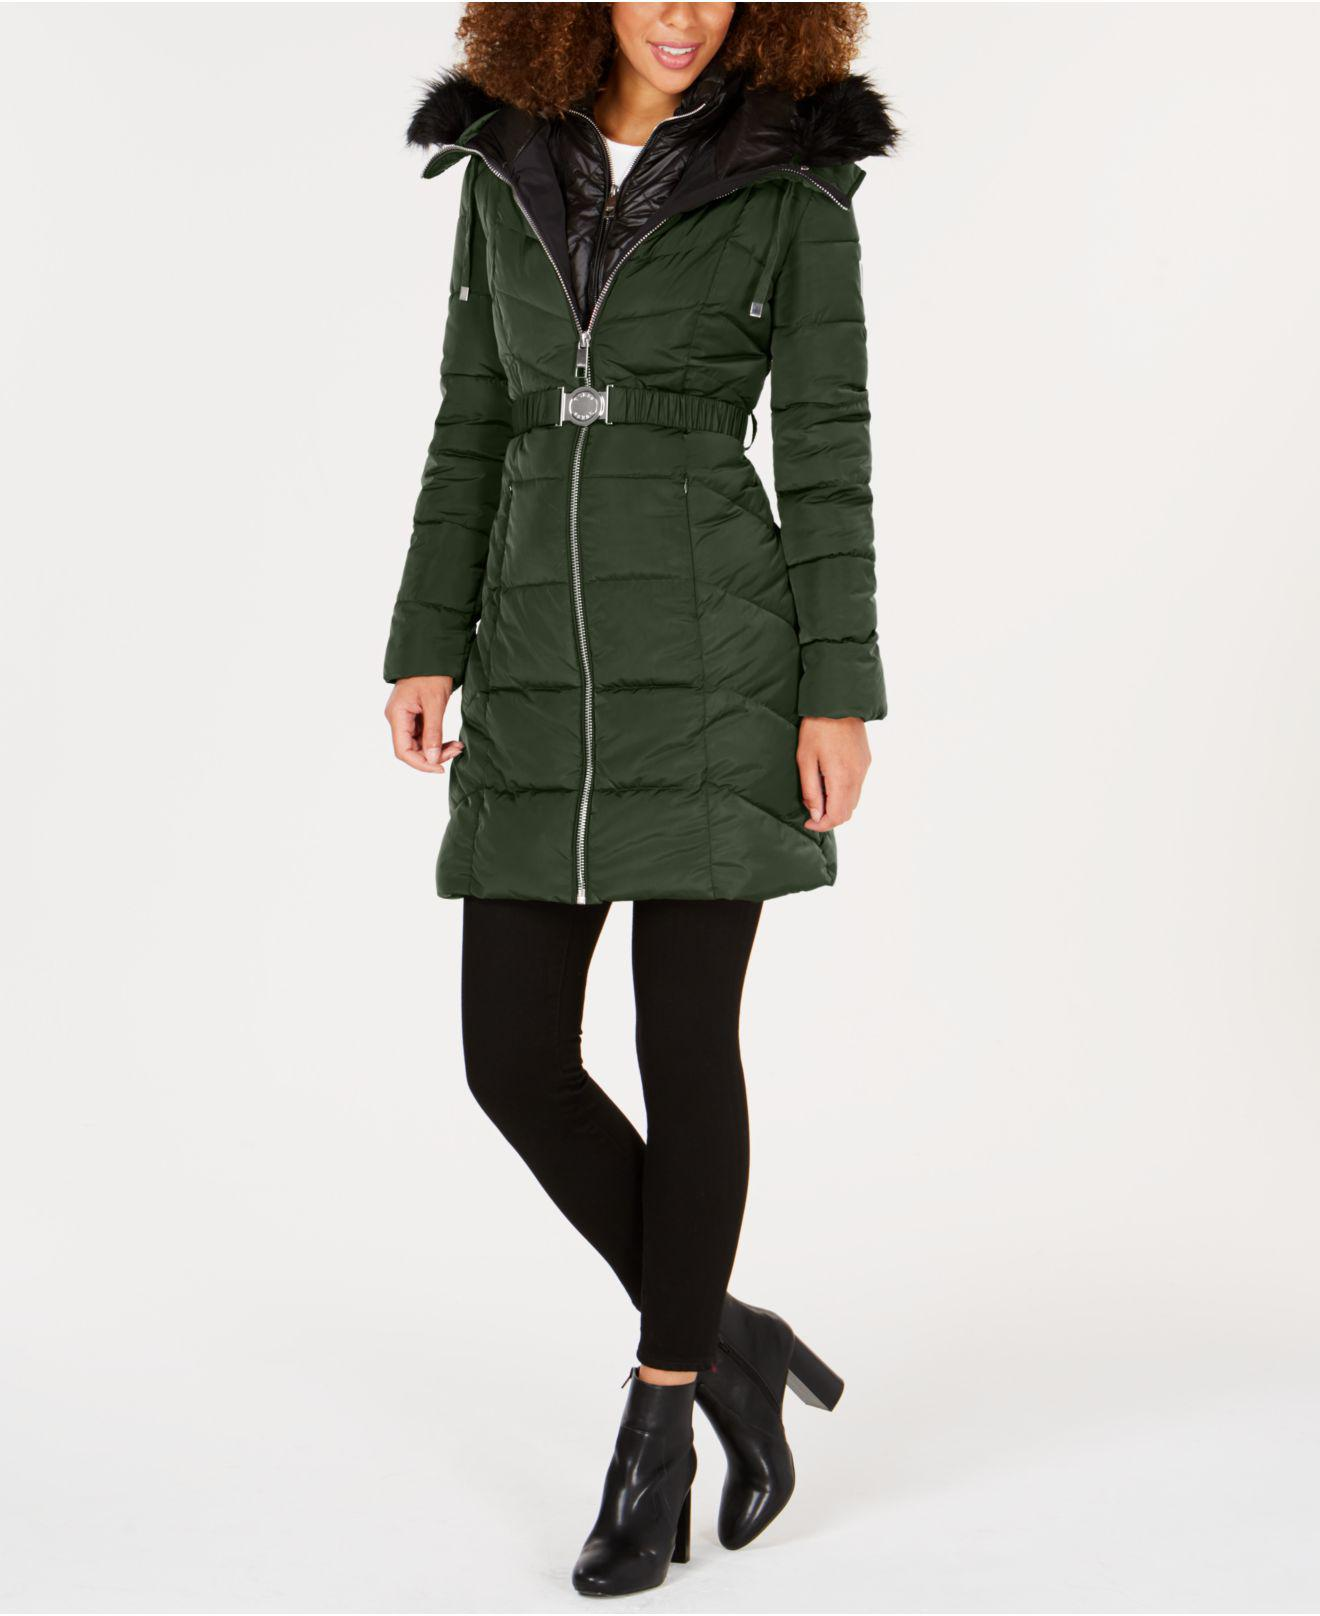 Guess Faux Fur Trim Hooded Belted Puffer Coat In Olive